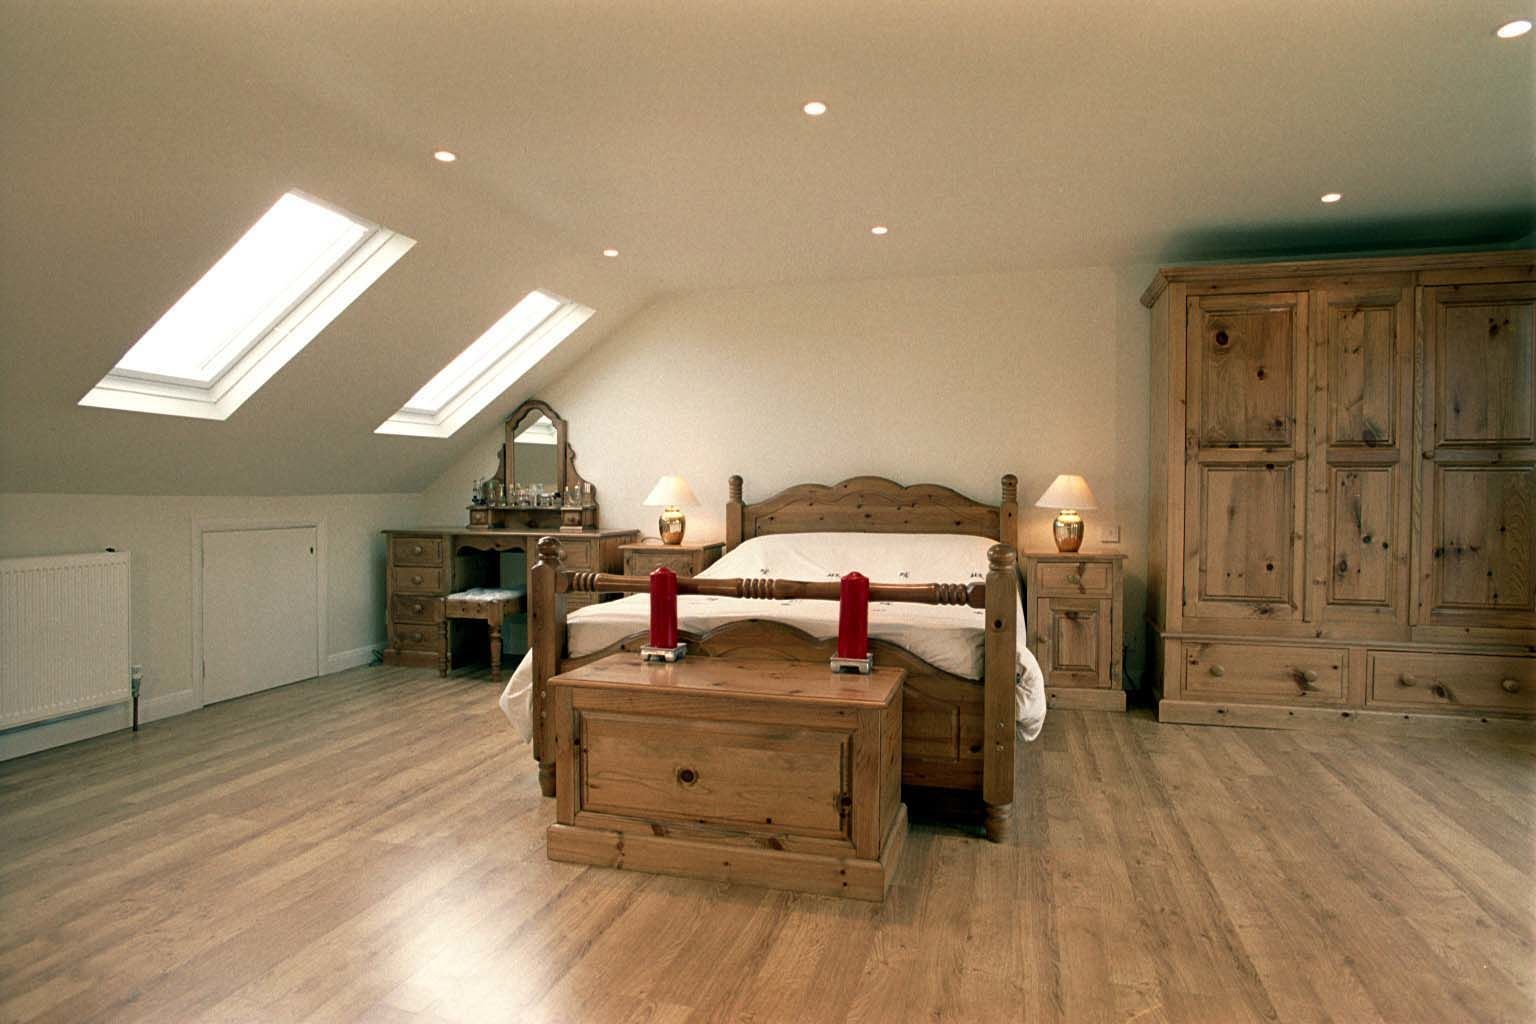 Bungalow Conversion Staffordshire Loft Conversion Epsom Loft Conversion Master Bedroom Attic Remodel To A Bedroom And Bathroom Conversion Design Prosloft